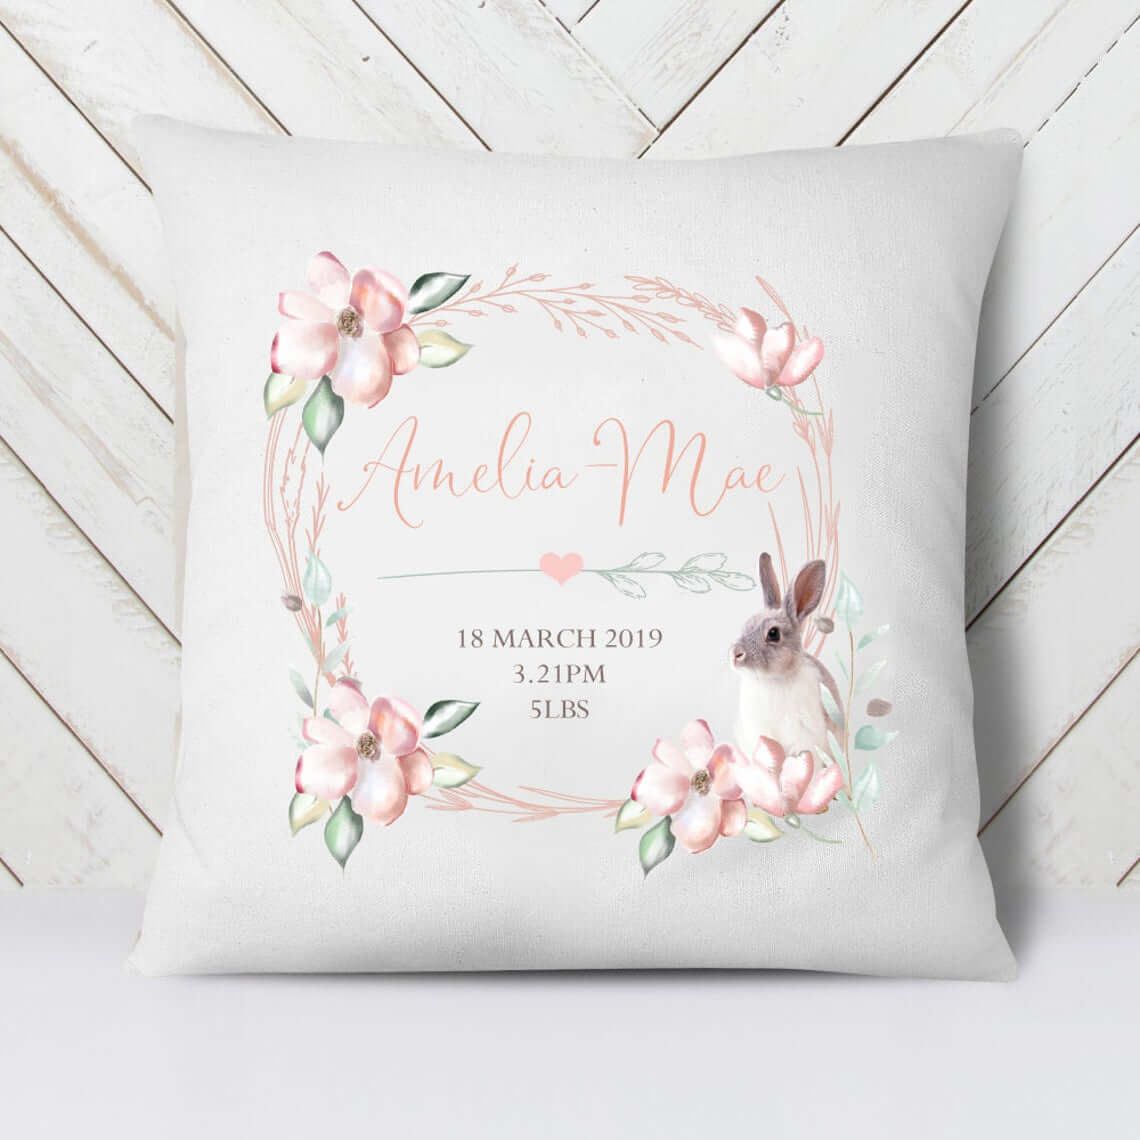 Personalized Baby Cushion for Nursery Decor